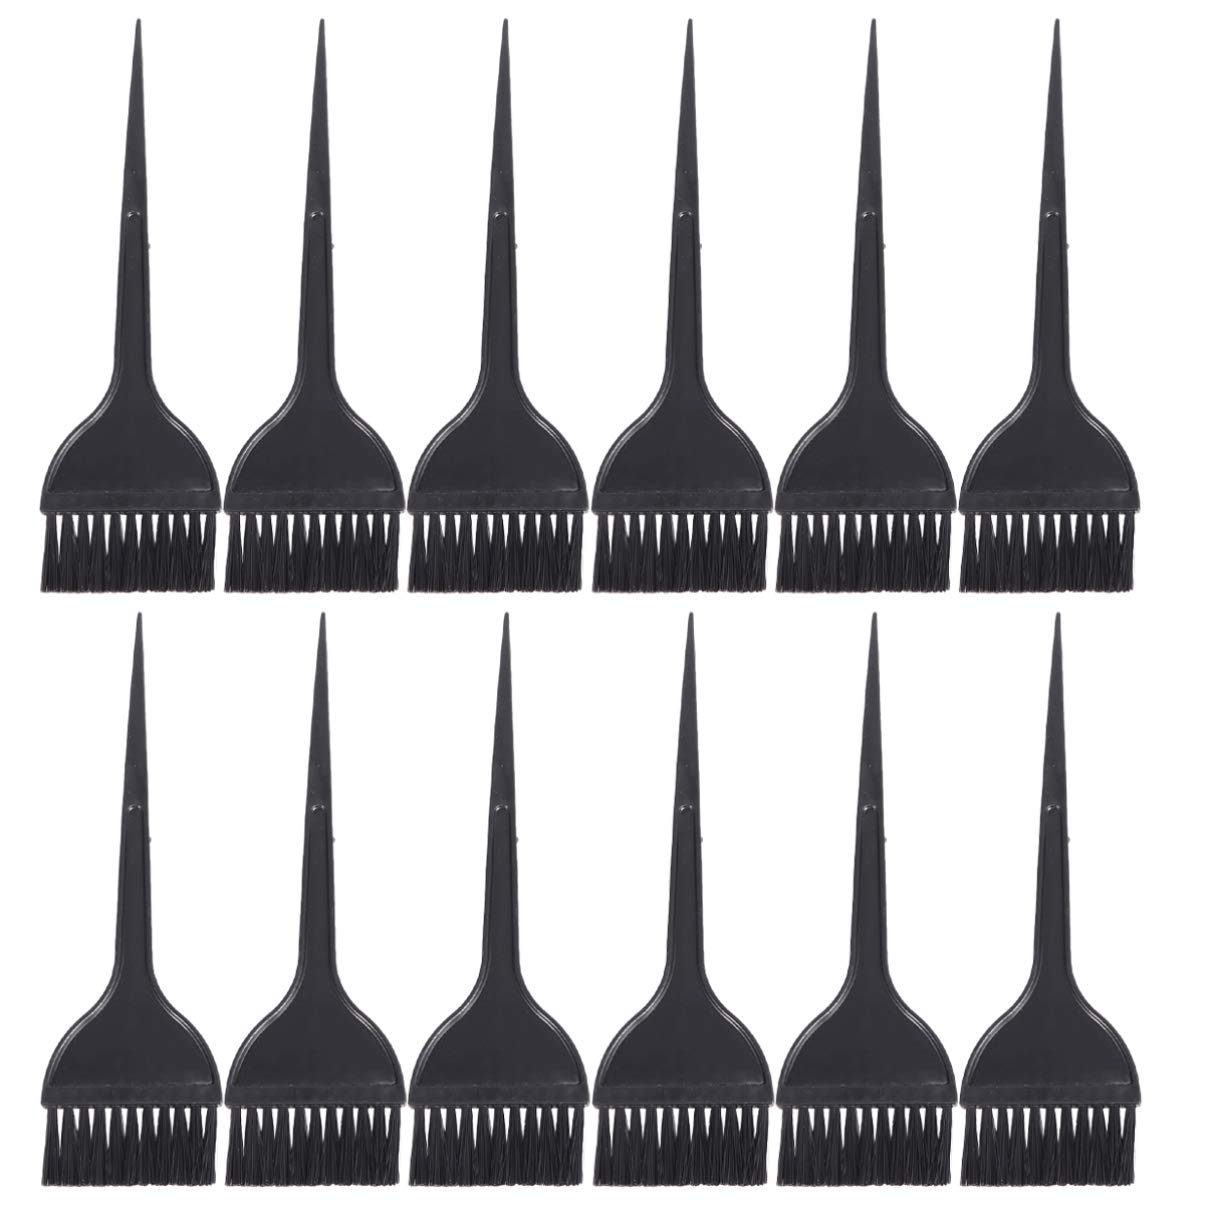 Pixnor 12 Pack Hair Dye Brushes, Highlight Brush Handle Hair Coloring Dyeing Kit Color Tint Applicator for Salon Black : Beauty